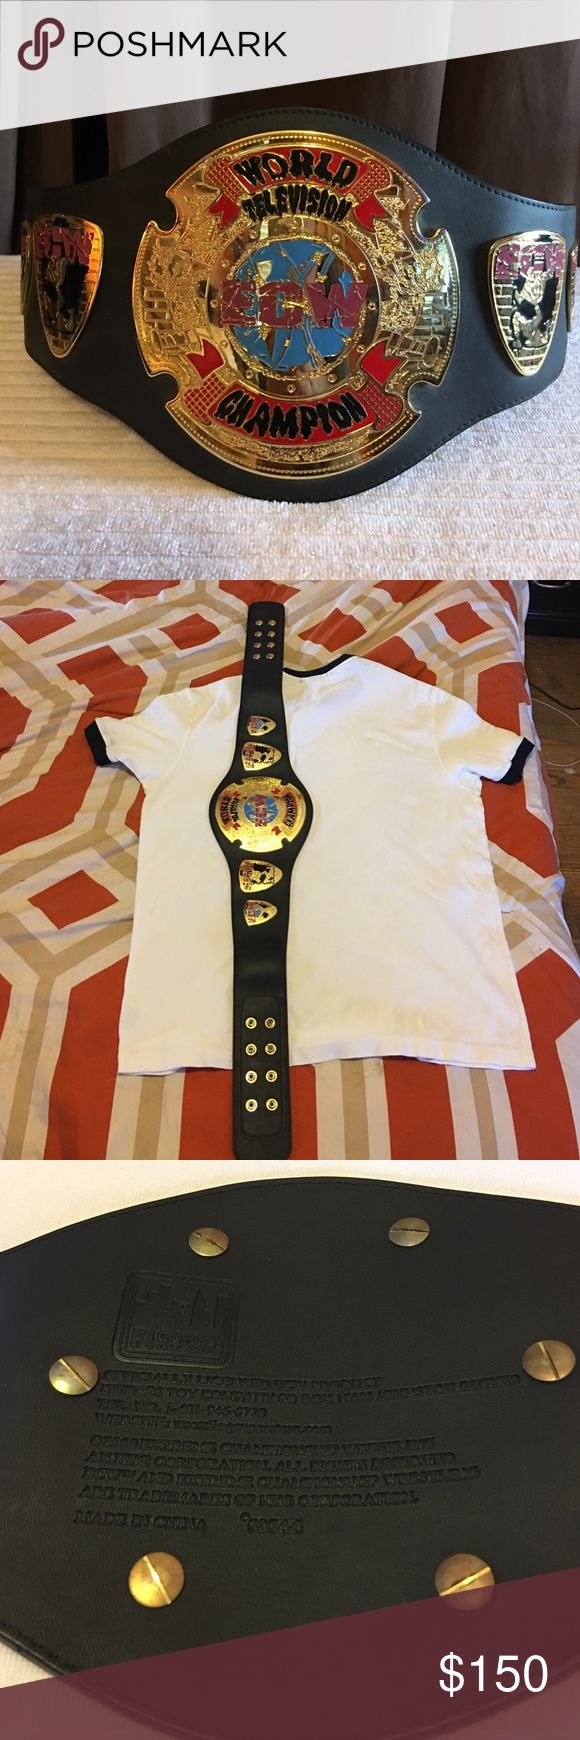 "❗️RARE ❗️ ECW Television Championship display belt SUPER RARE❗️ECW TELEVISION CHAMPION display replica wrestling belt. Made by Figures Inc. 4mm gold plated metal plates attached to heavy strap. THIS IS NO TOY BELT.  This is a child sized replica that will fit a 32"" waist. This belt was made PRE- WWE which makes it VERY RARE Accessories Belts"